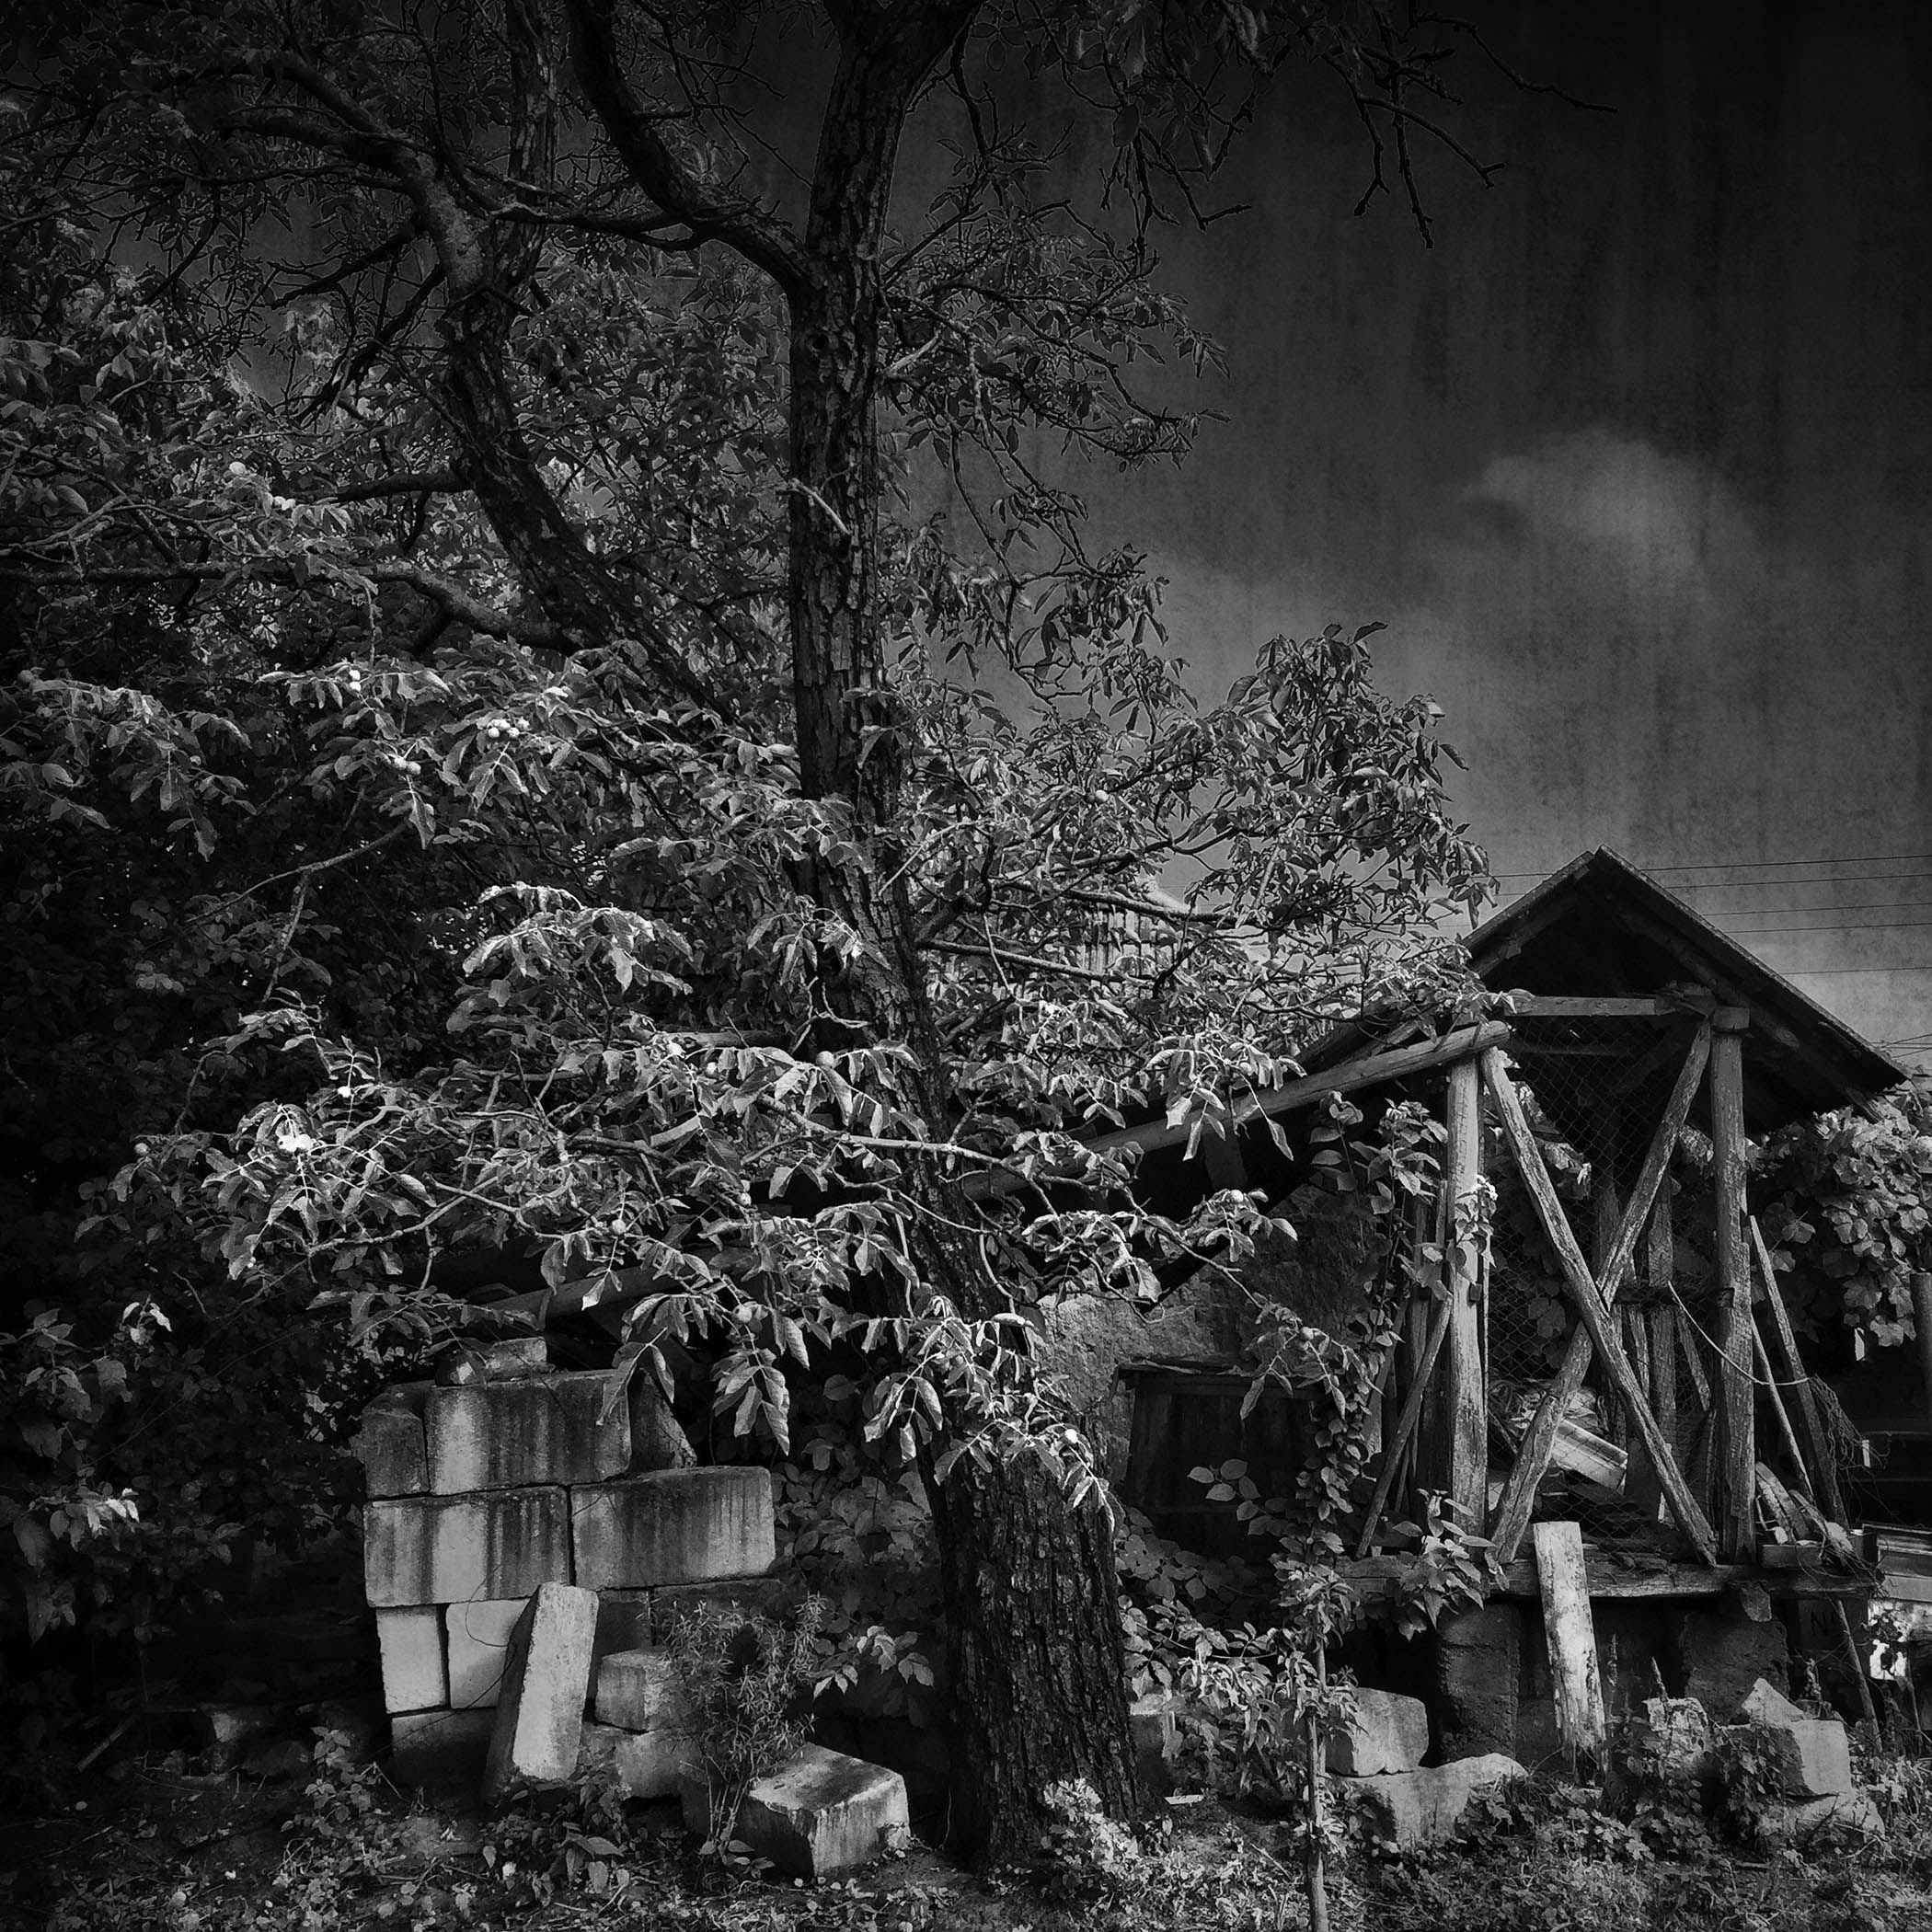 What's left of the old tree, Miheleu, Romania, 2016.jpg